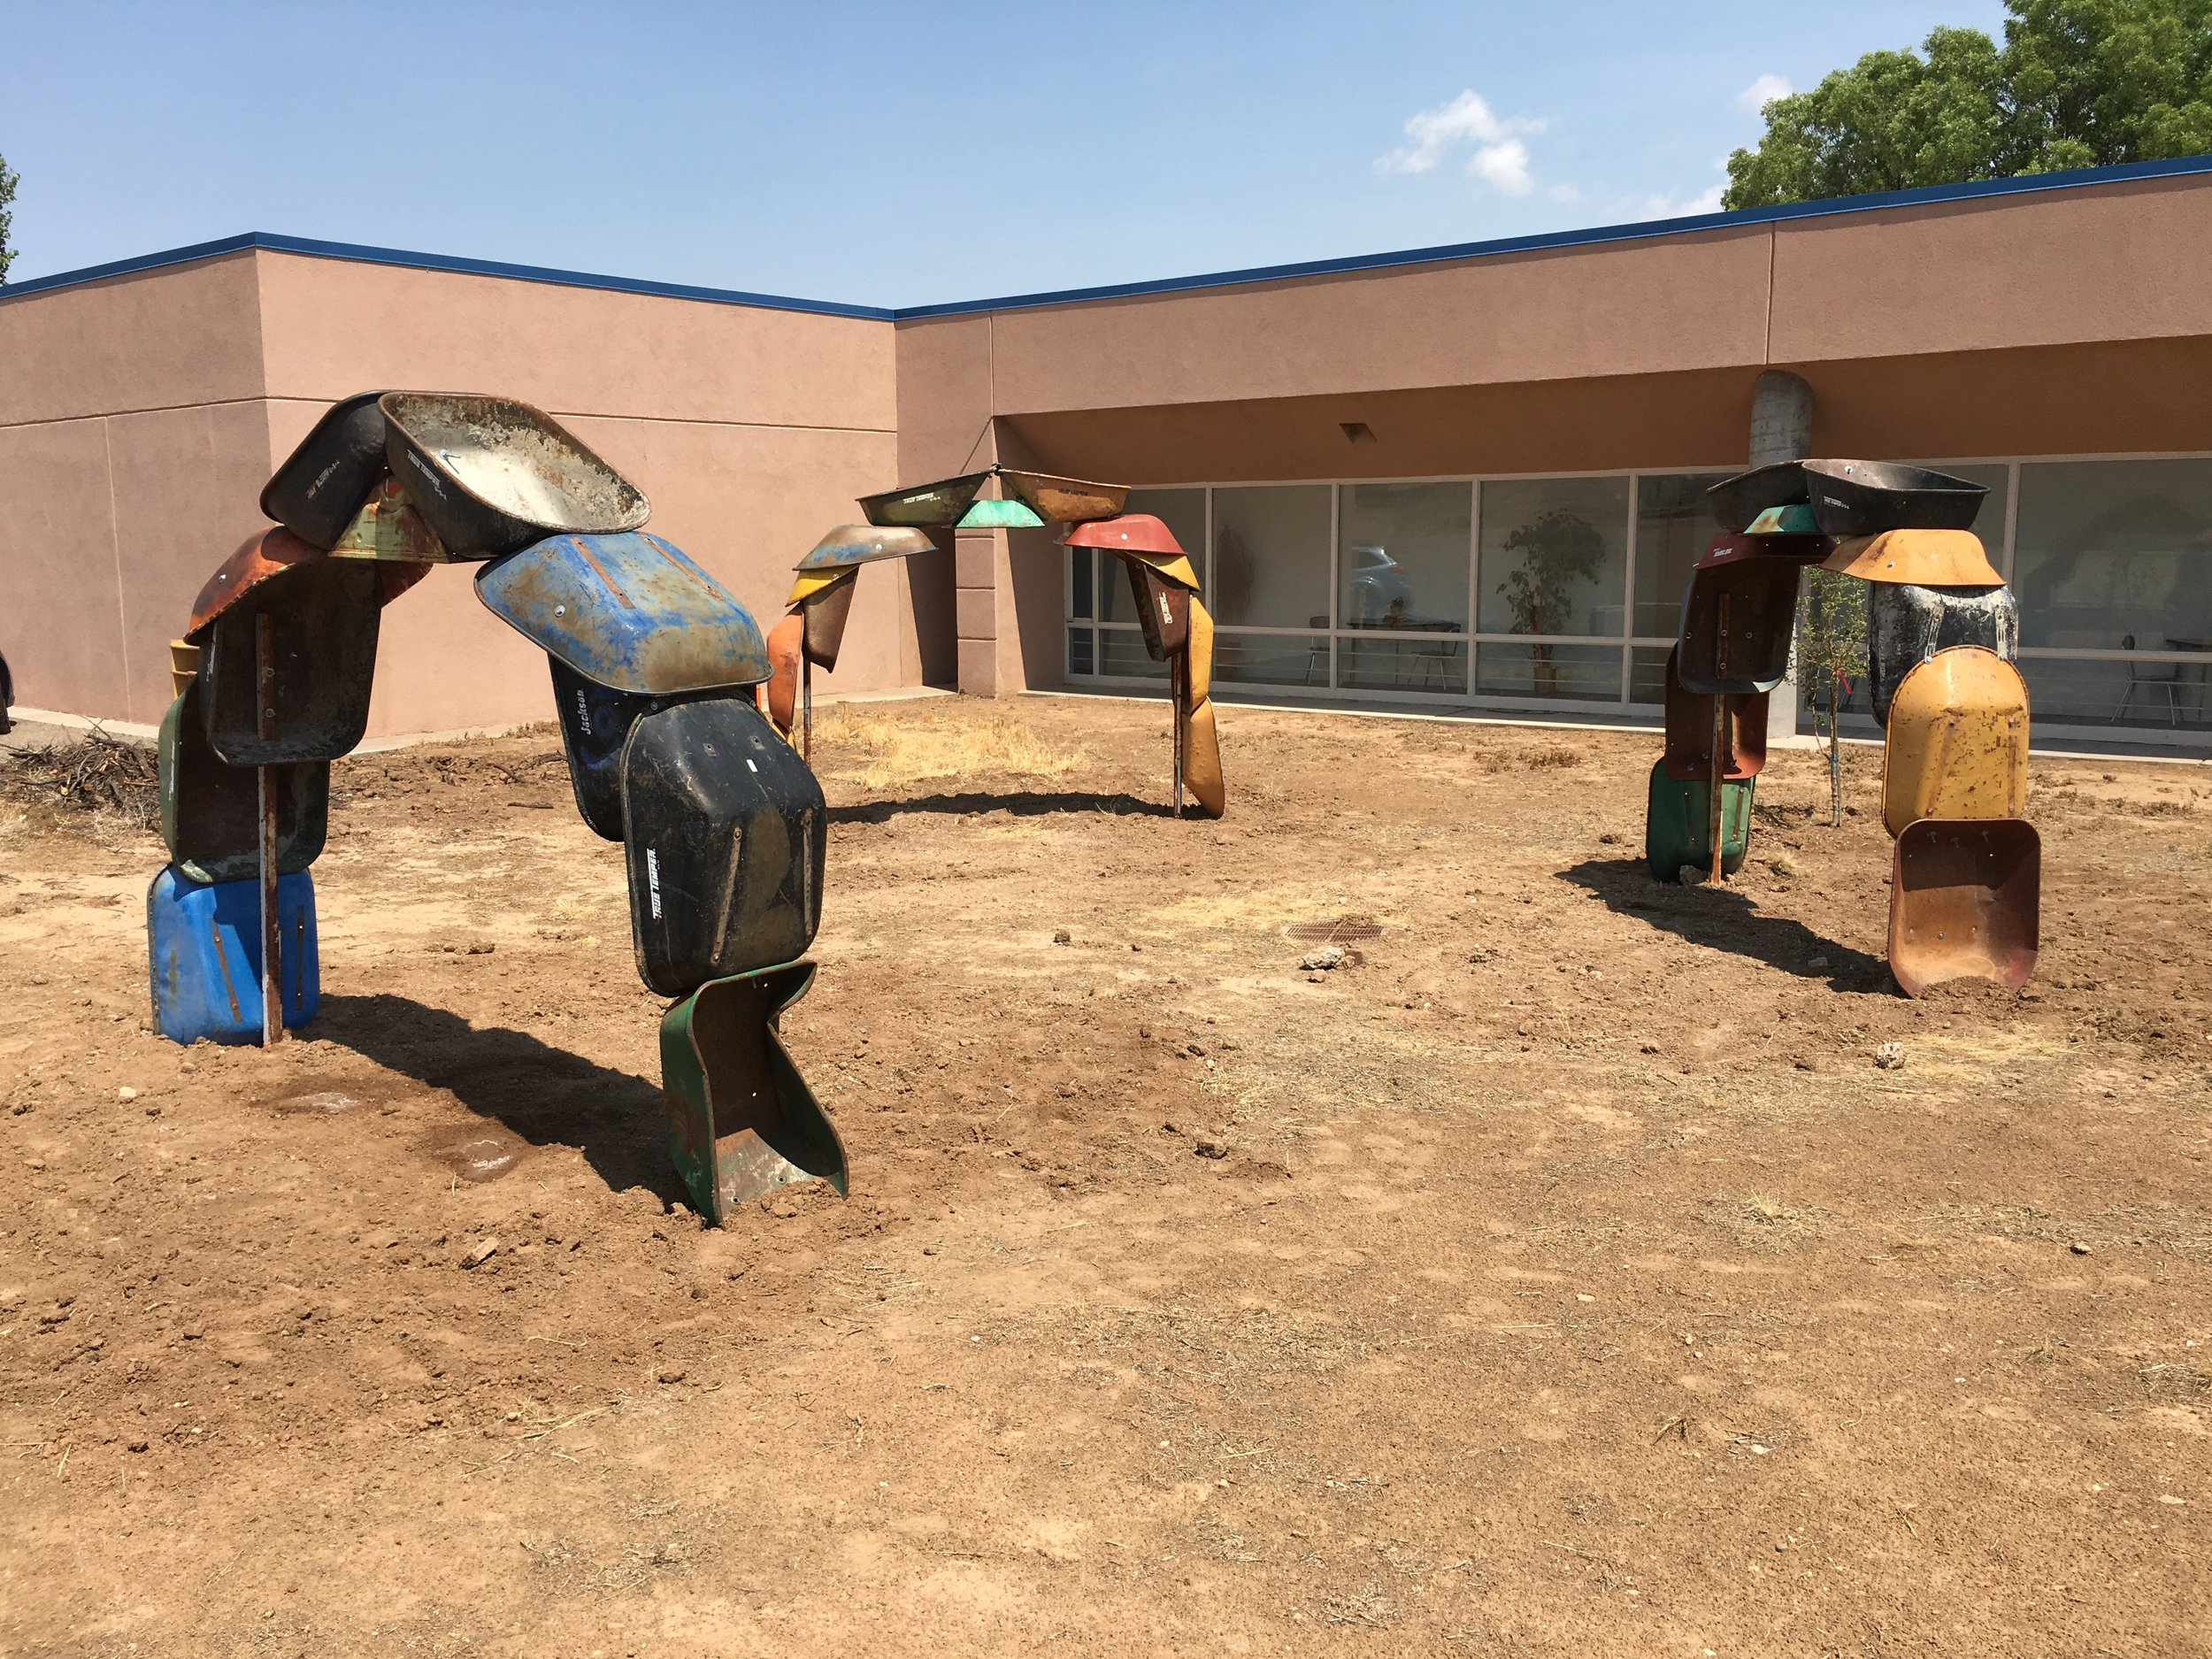 """Willis, Joshua, """"Barrowhenge,"""" Commissioned by NM Arts, Part of T.I.M.E (Temporary Installation Made for the Environment), Edgewood Public Library, 2017"""